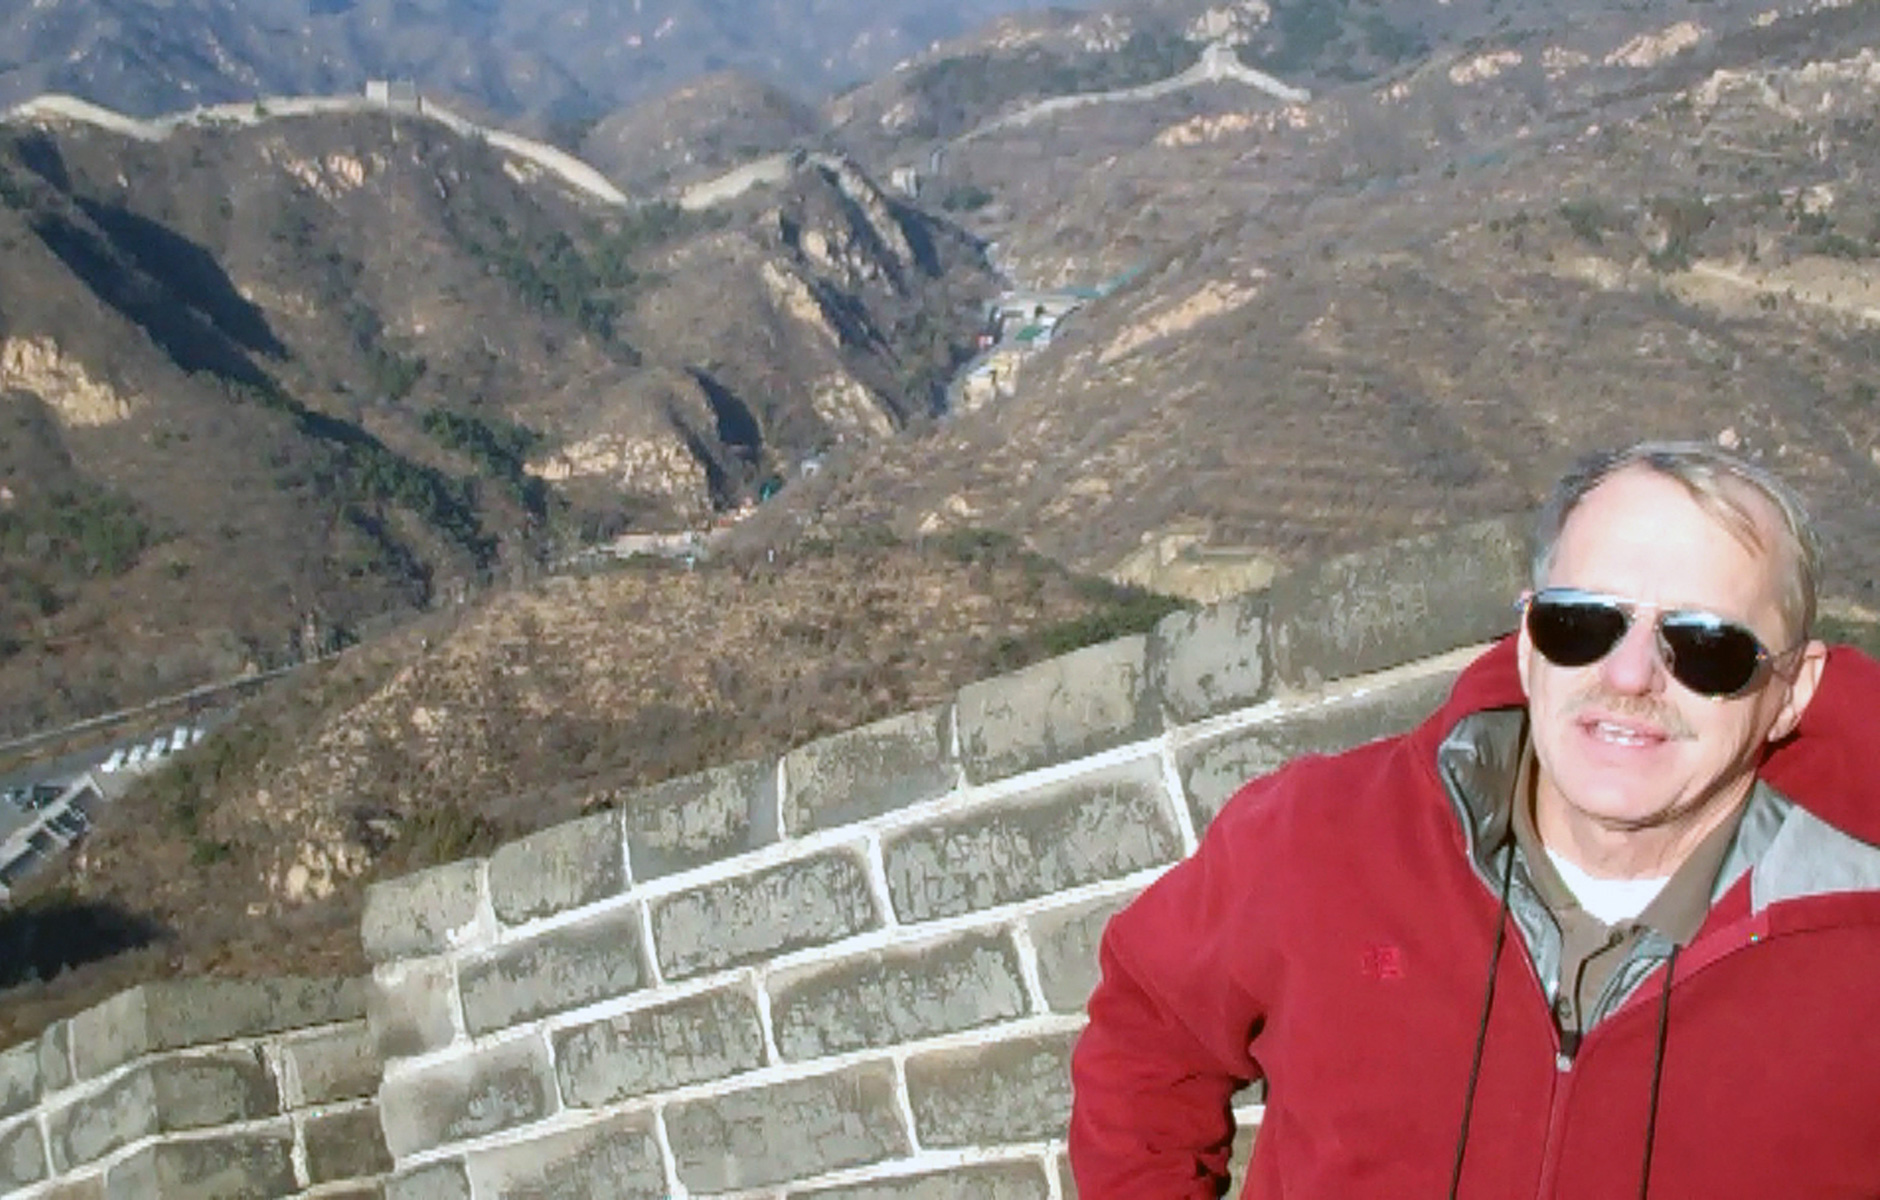 John Emery at Great Wall of China